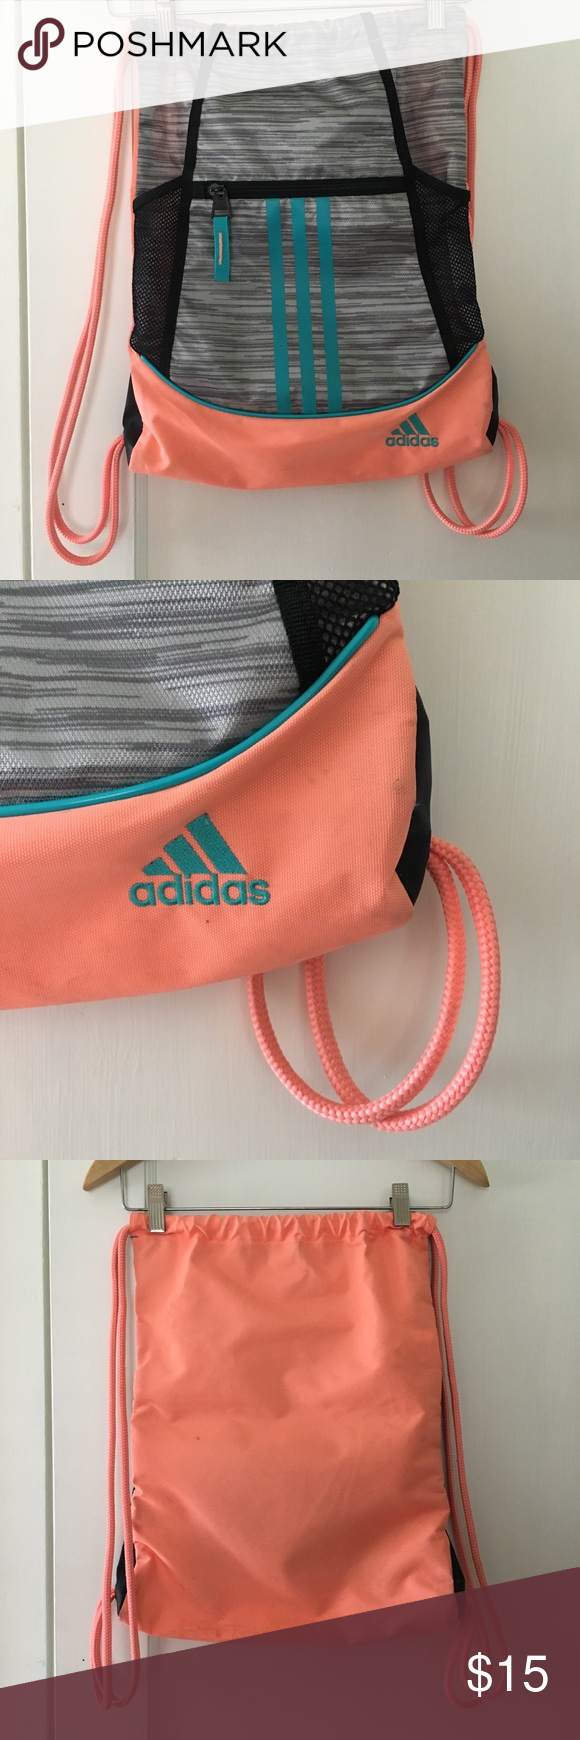 59c474bfadcf Adidas Pull String Bag Great condition. Bright colors. Zipper front pocket. Two  separate mesh side pockets. Very durable. adidas Bags Backpacks